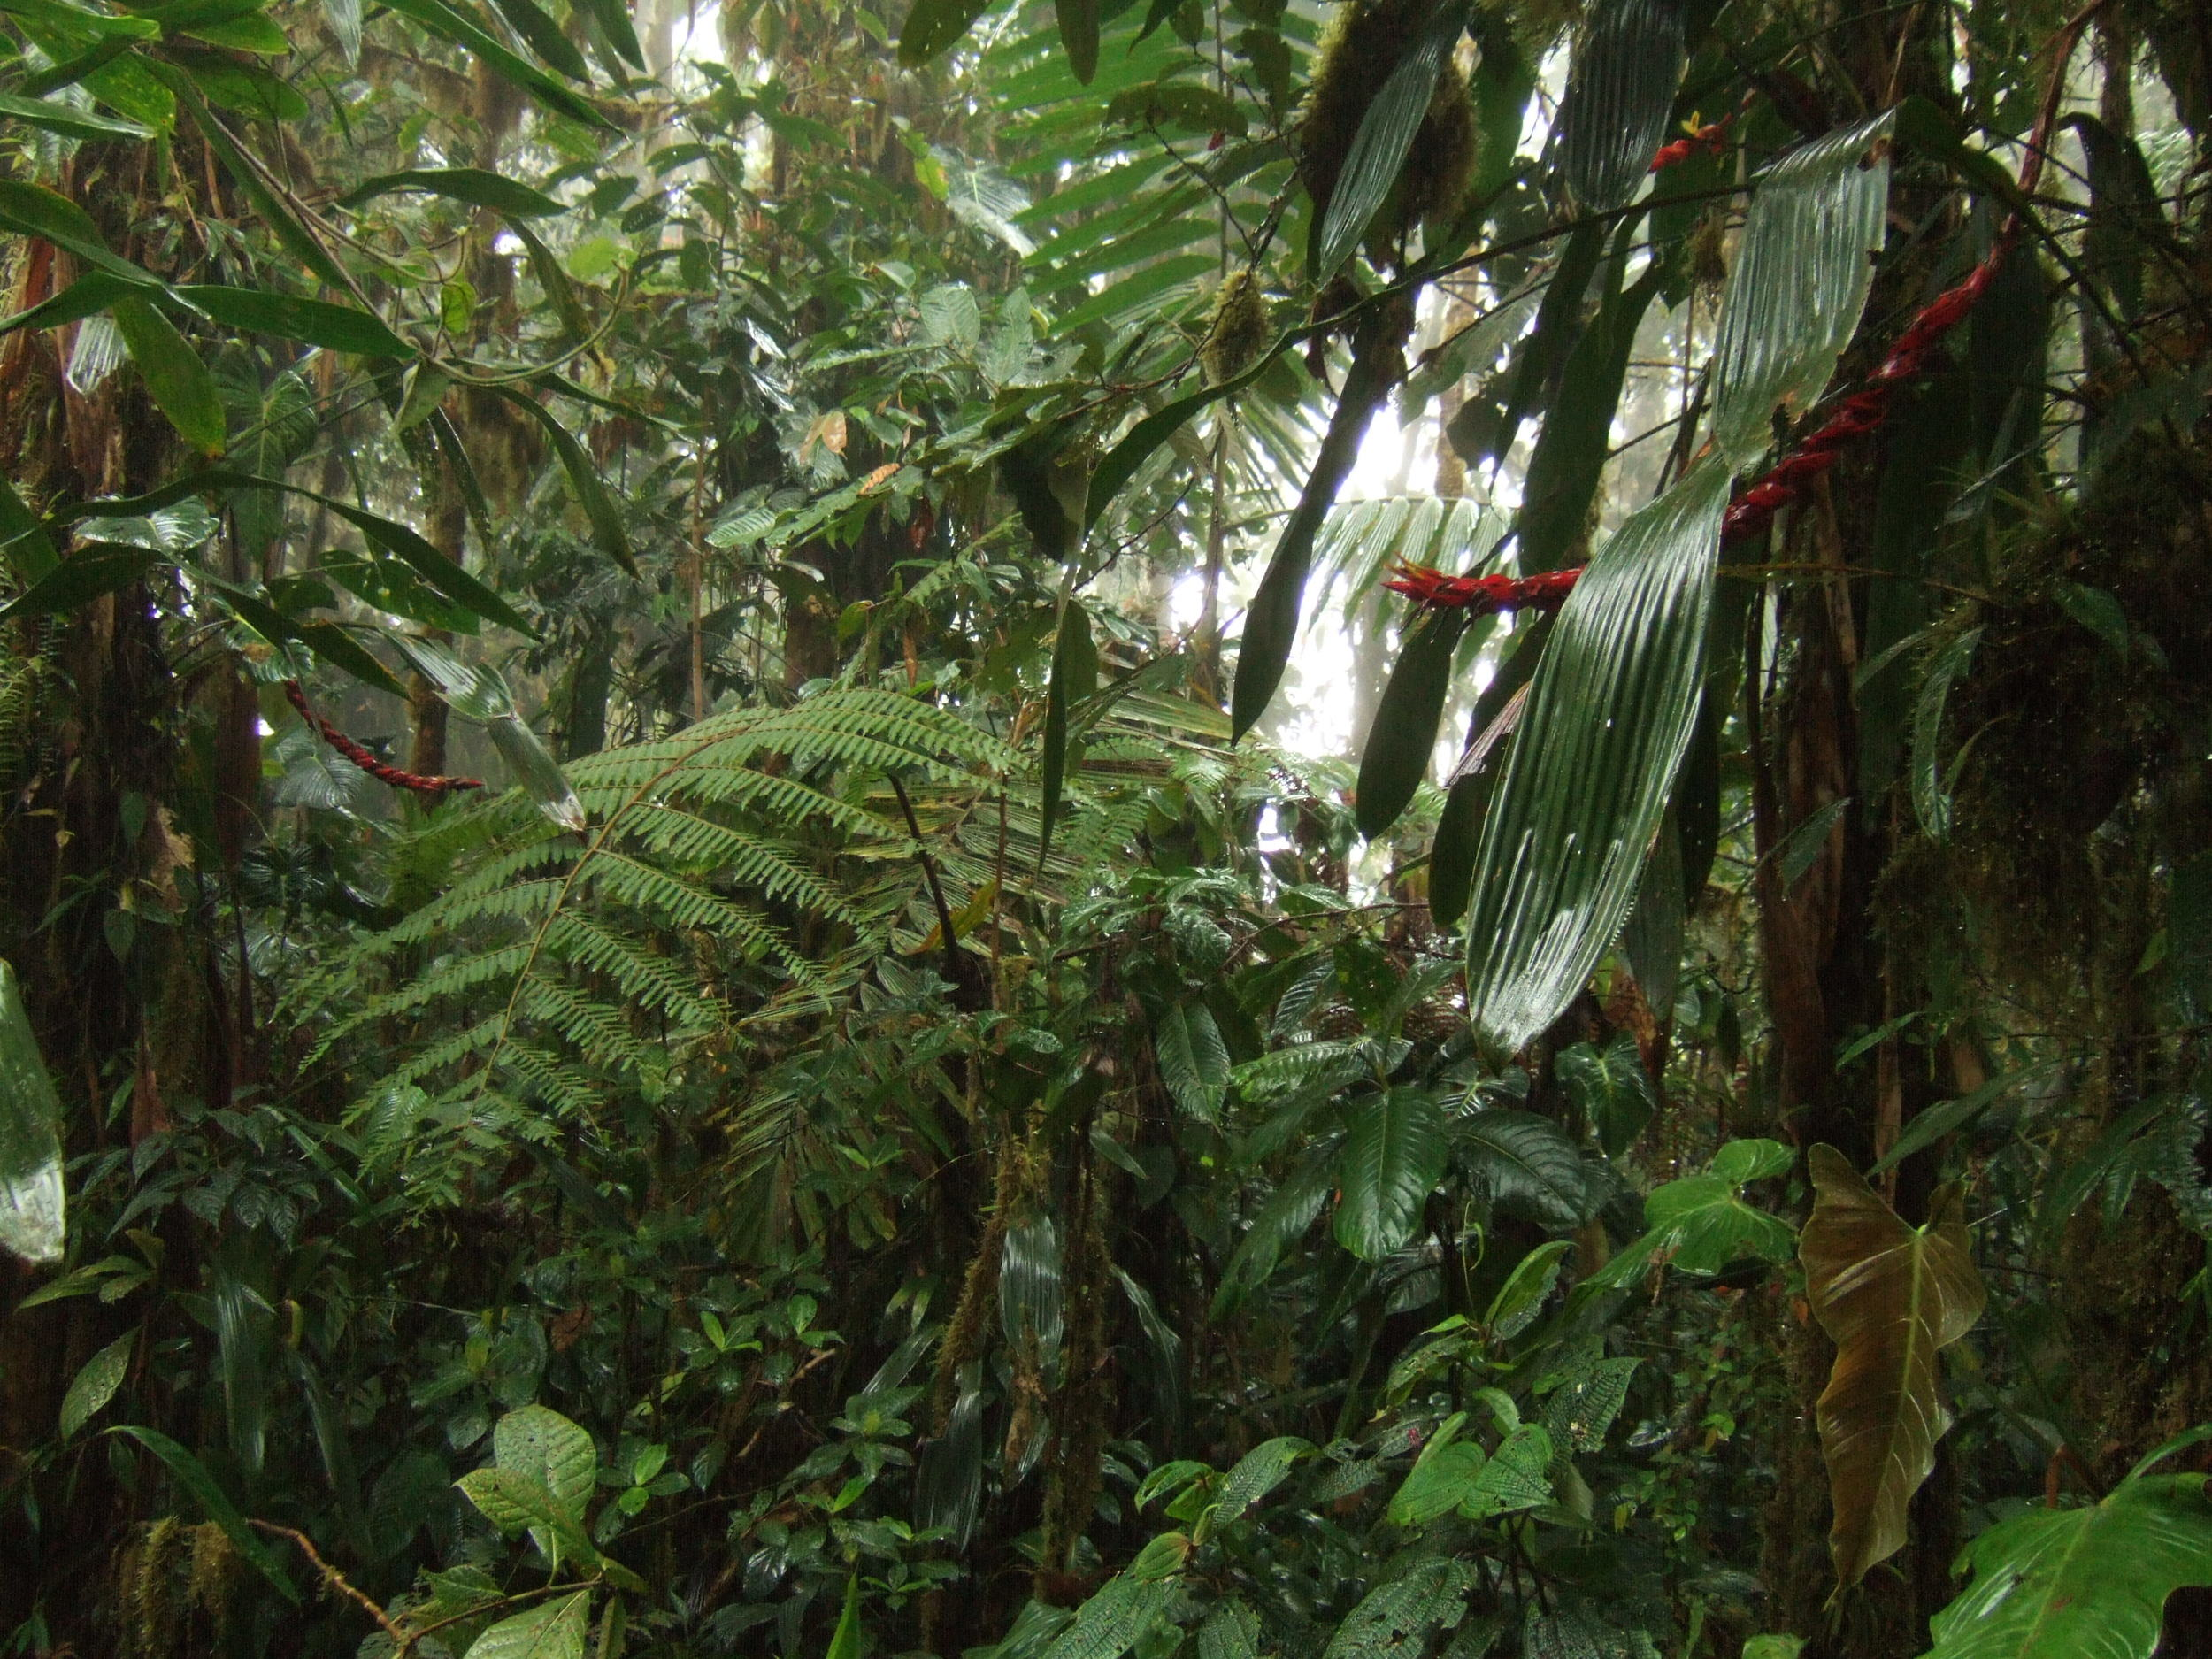 A photo of a sopping wet rainforest which I've put here instead of a boring stock image of someone watering a houseplant.  Bosque Protector Los Cedros , Ecuador. Image ©  In Situ Plants .